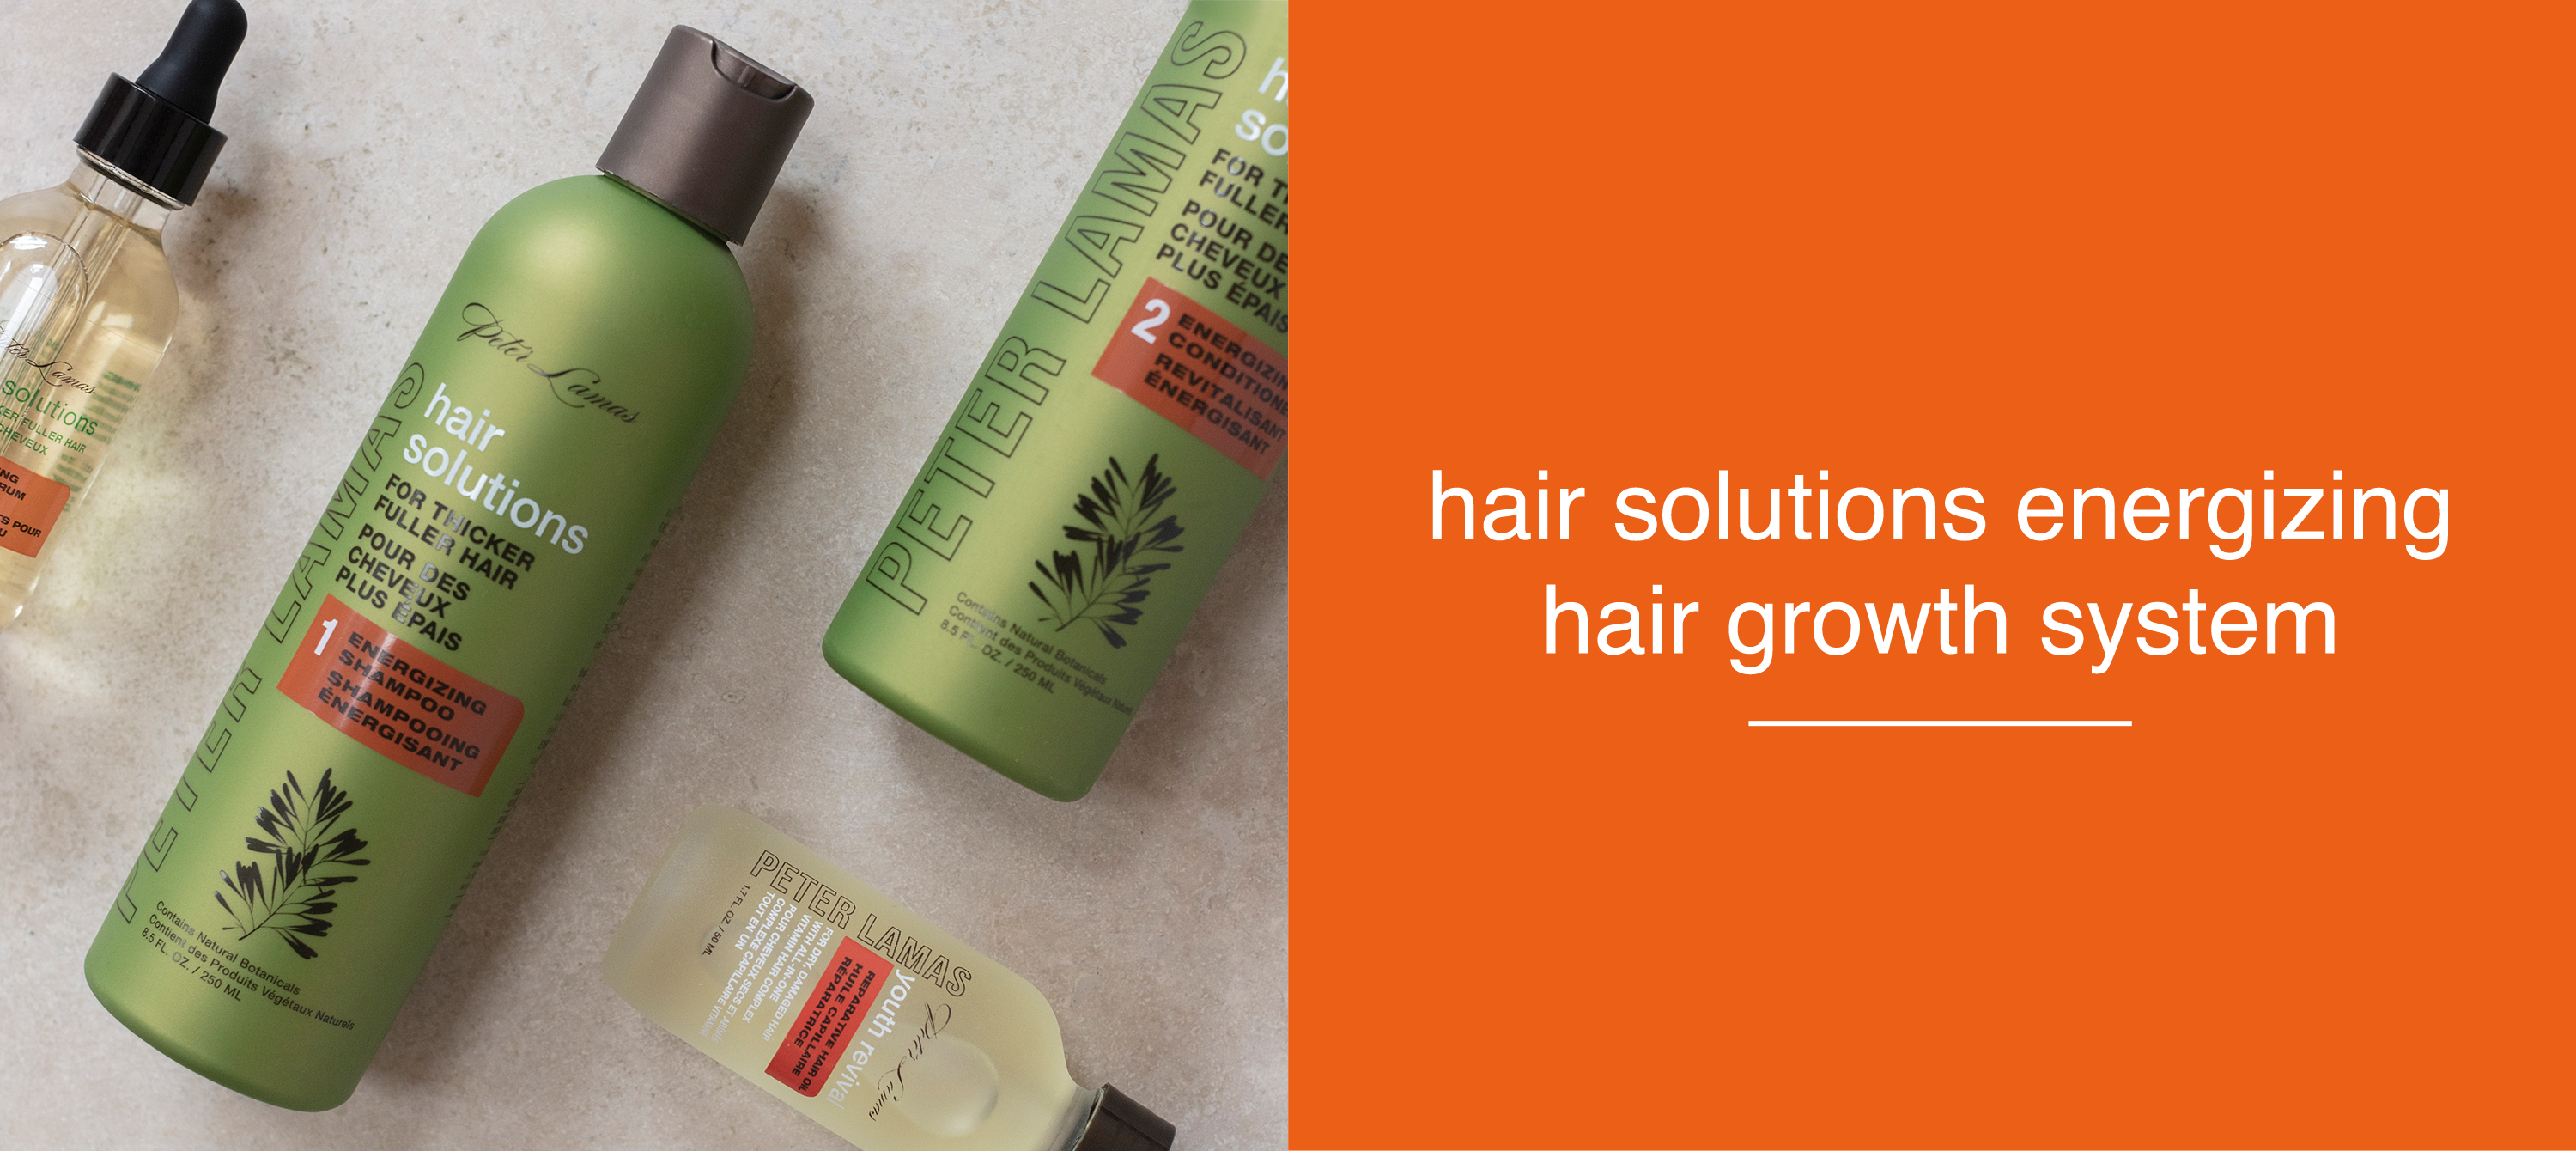 Hair Solutions Energizing Hair Growth System